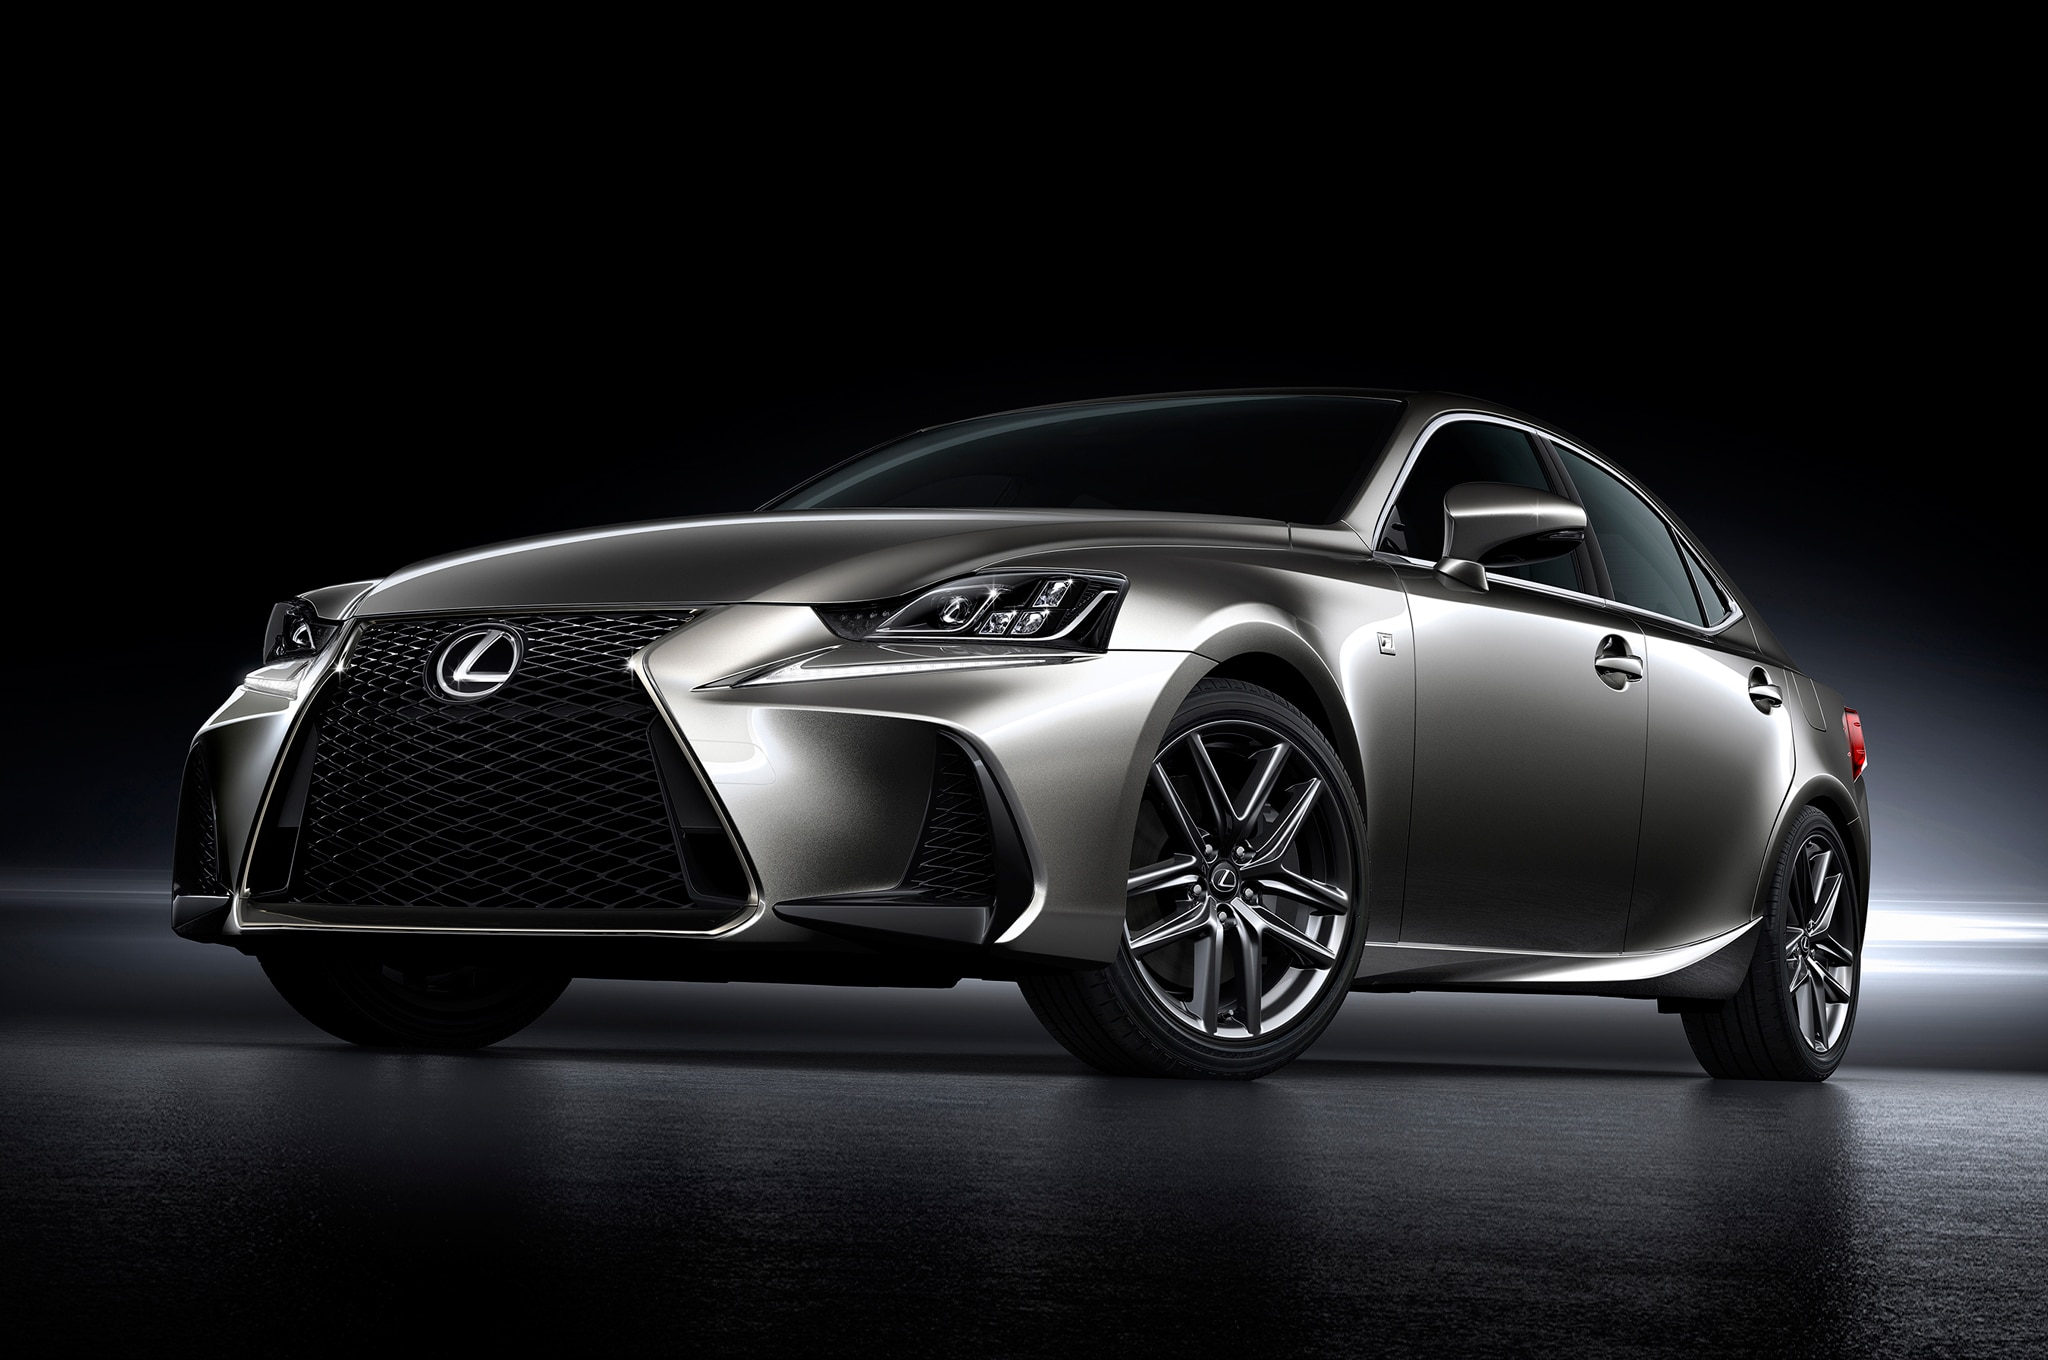 http://st.automobilemag.com/uploads/sites/11/2016/04/2017-Lexus-IS-Chinese-Spec-front-three-quarter-low.jpg